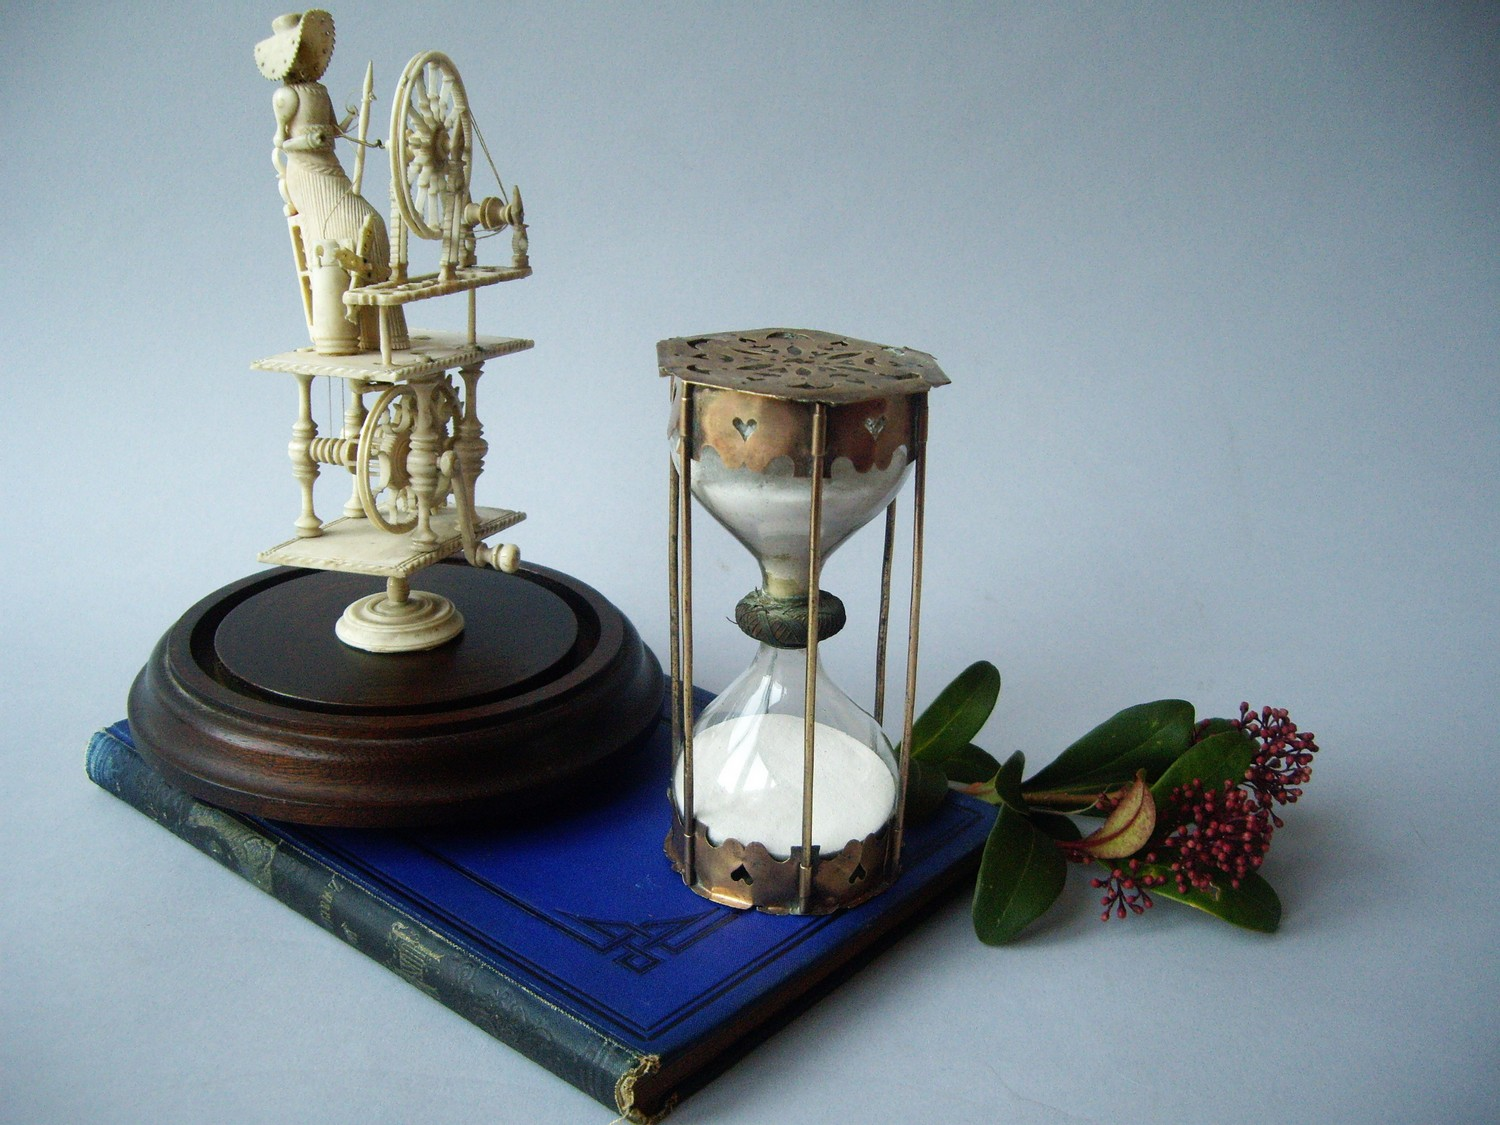 17TH CENTURY FRANCE HOURGLASS IN BRASS SETTING